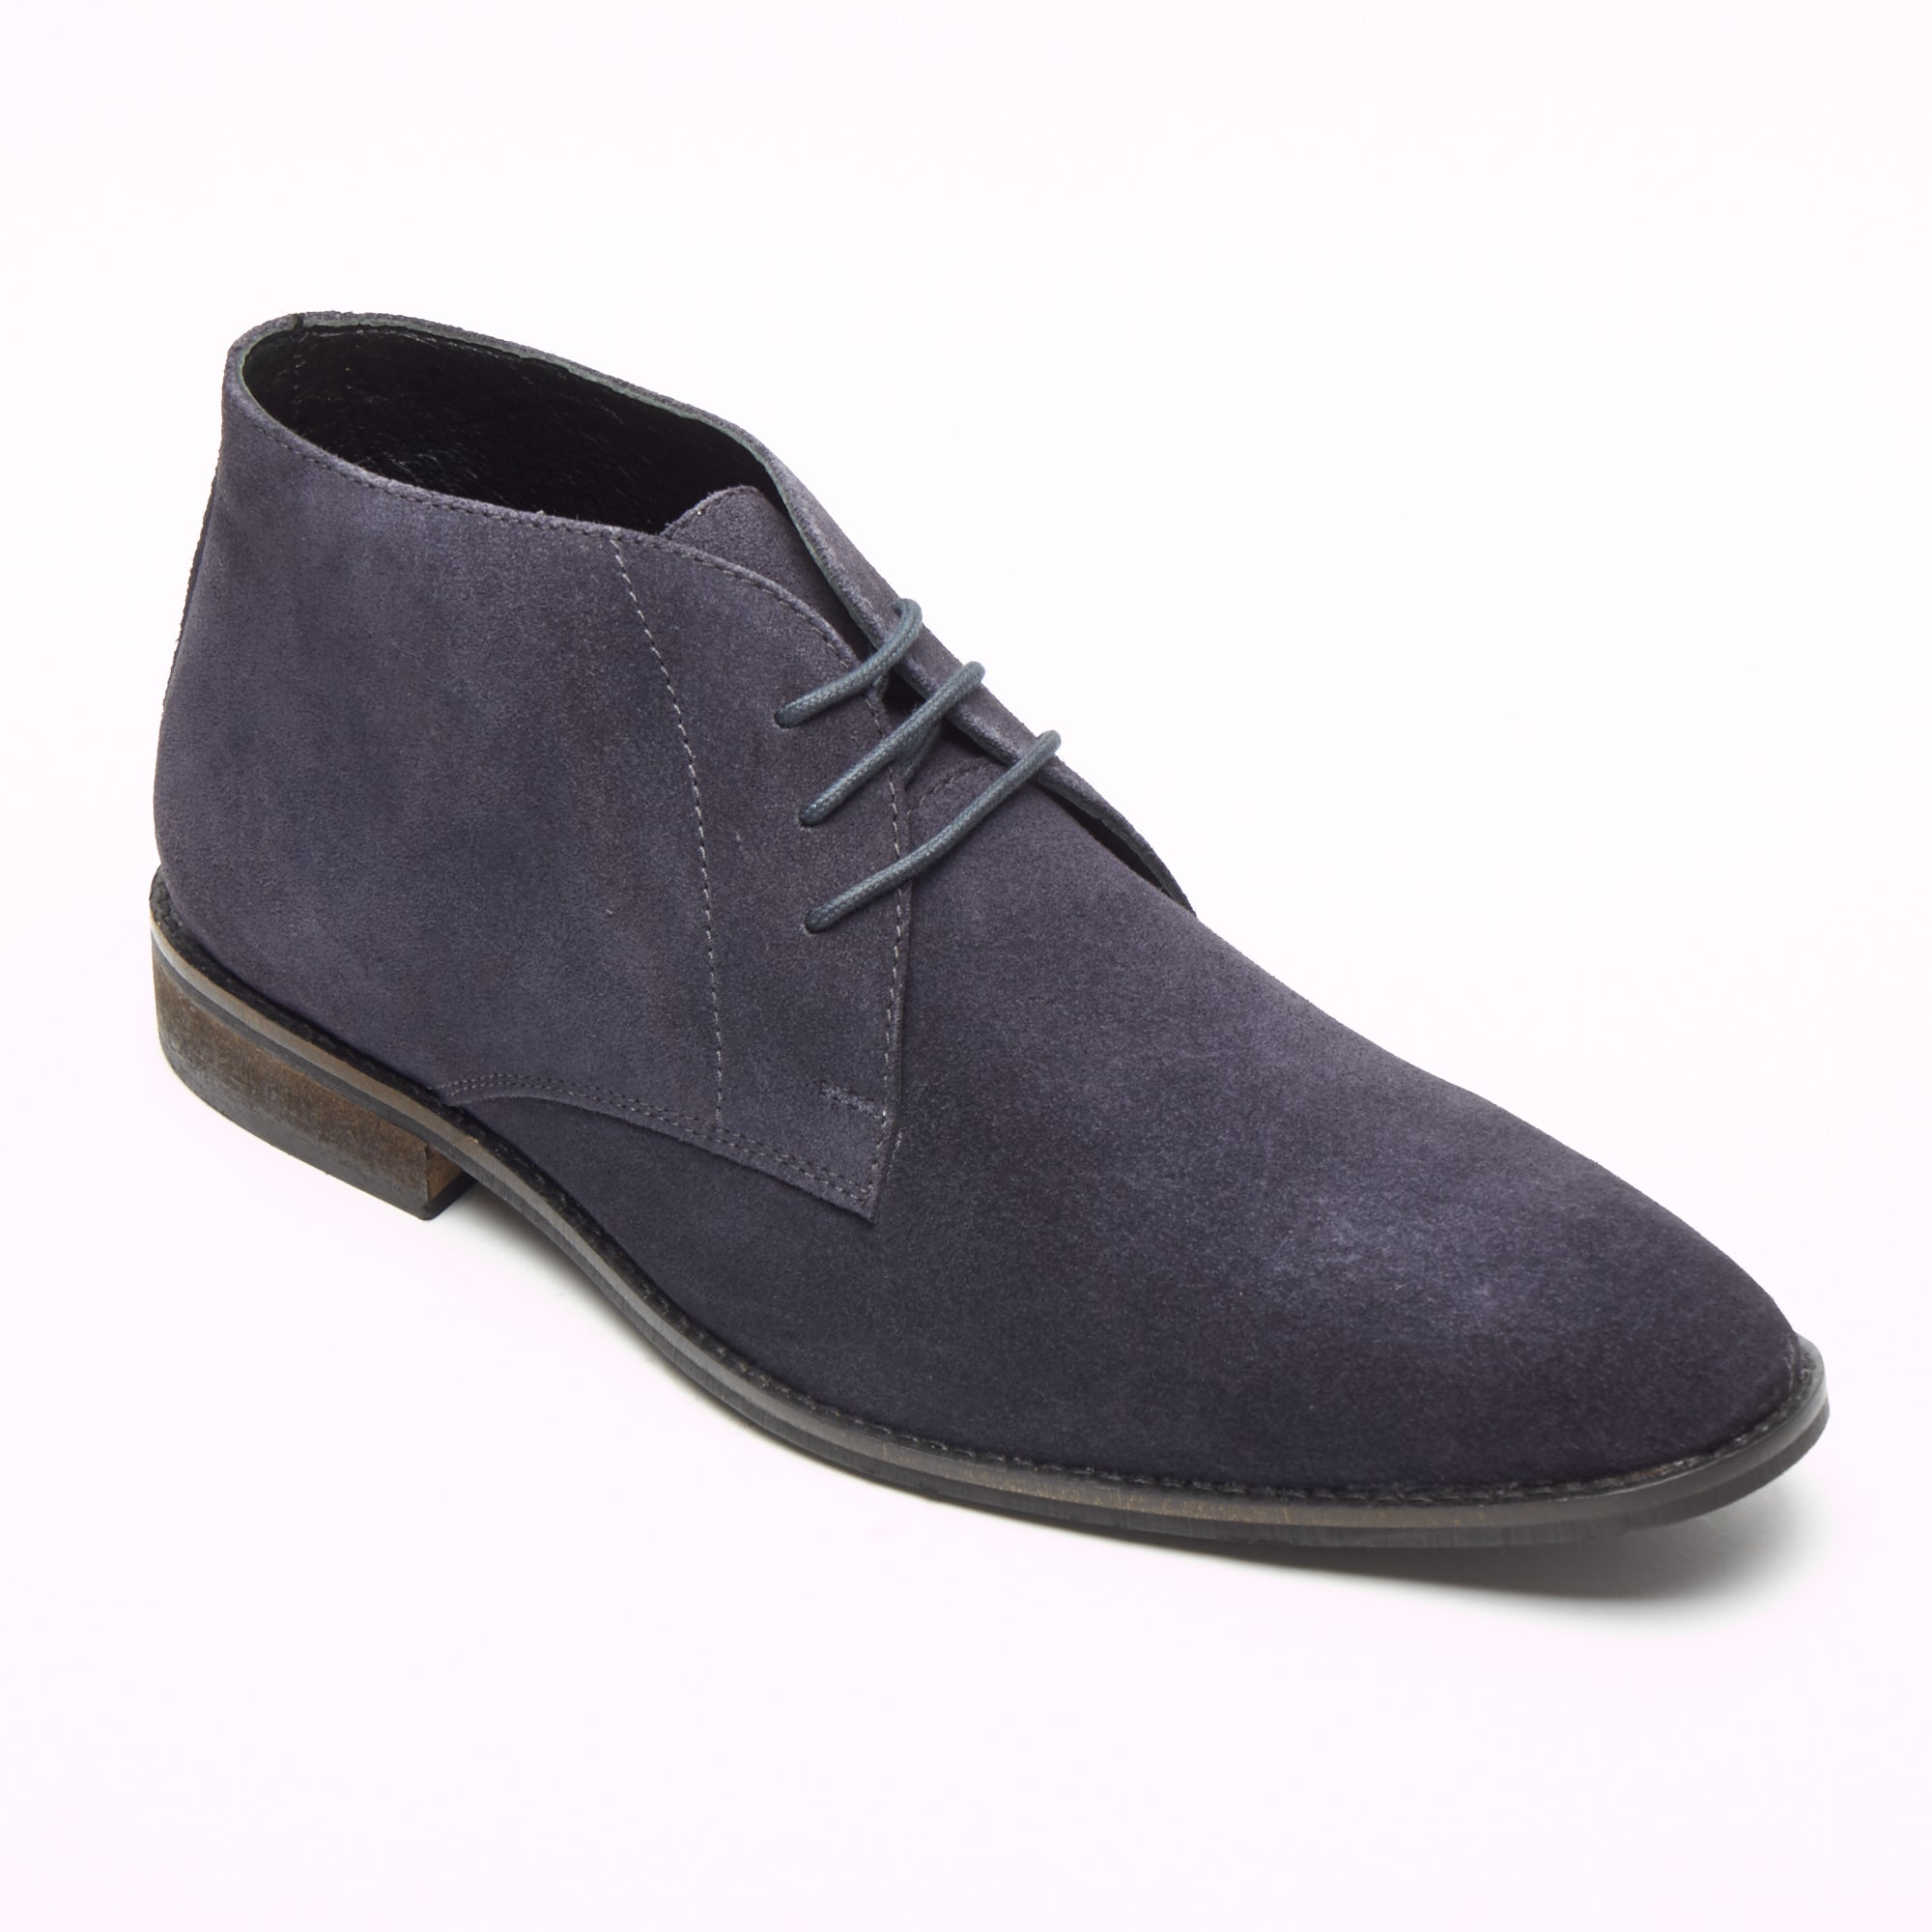 Mens Suede Ankle Boots - SF-251-Suede Navy